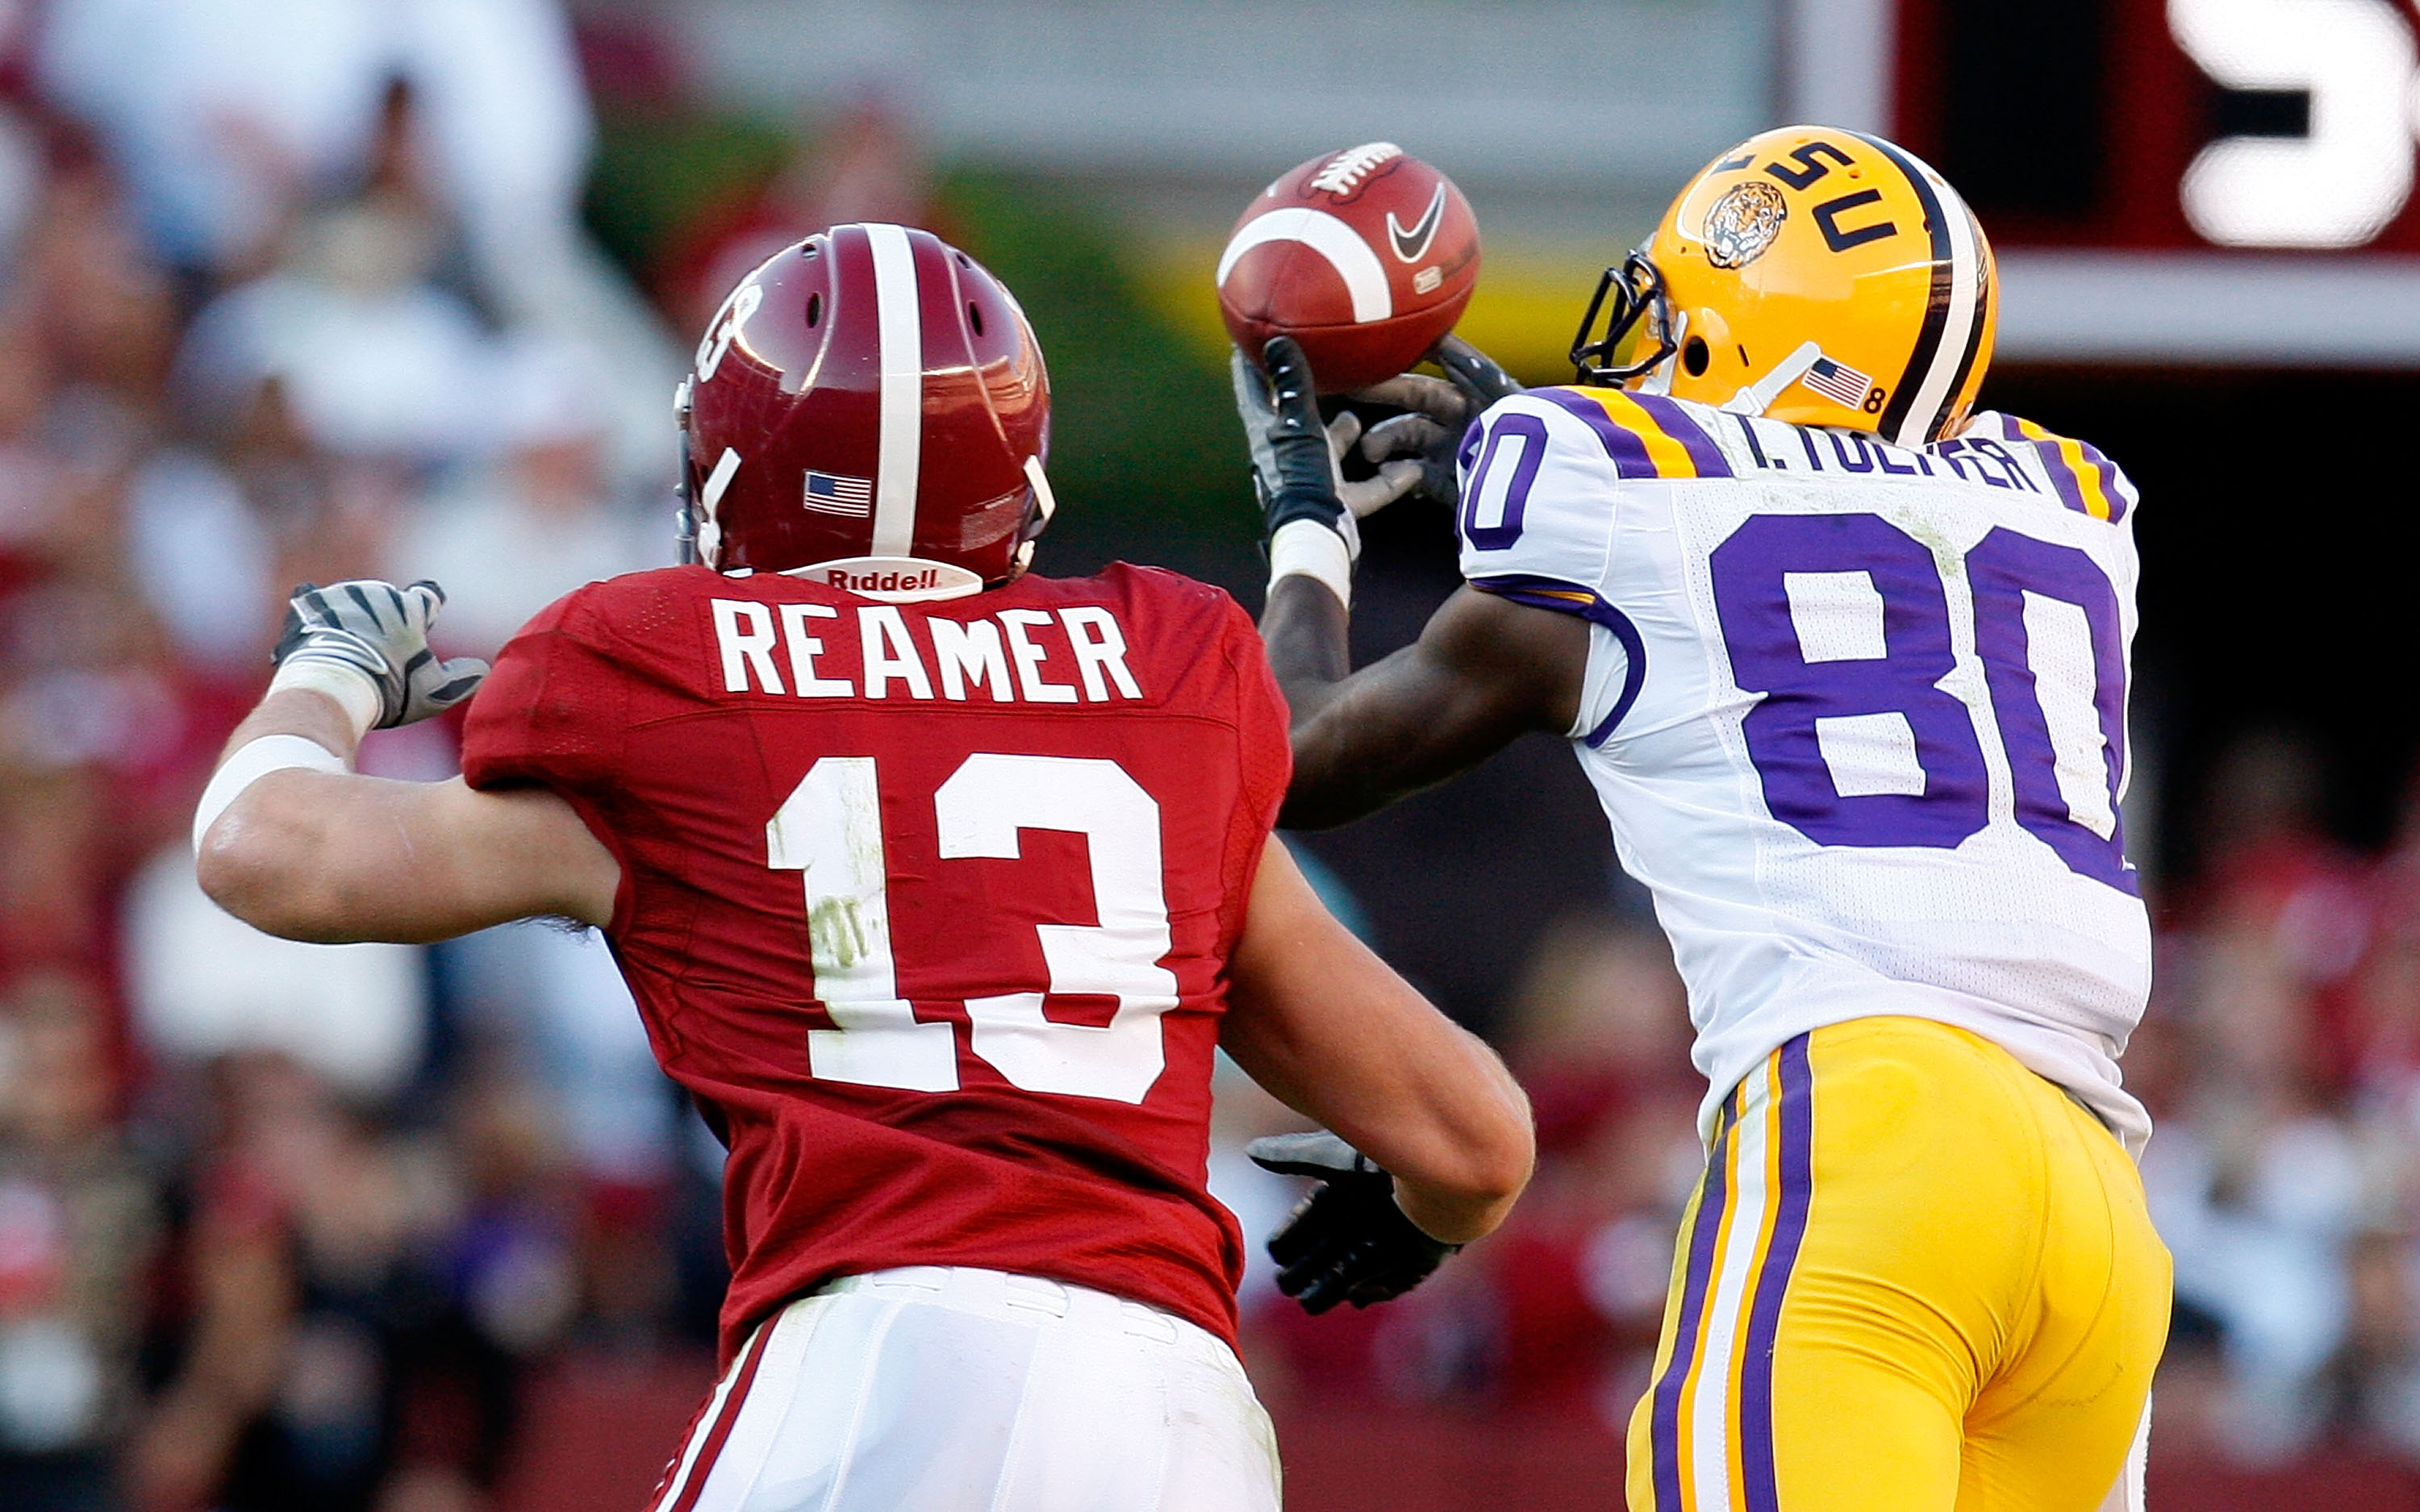 TUSCALOOSA, AL - NOVEMBER 07:  Terrance Toliver #80 of the Louisiana State University Tigers fails to pull in this reception against Cory Reamer #13 of the Alabama Crimson Tide at Bryant-Denny Stadium on November 7, 2009 in Tuscaloosa, Alabama.  (Photo by